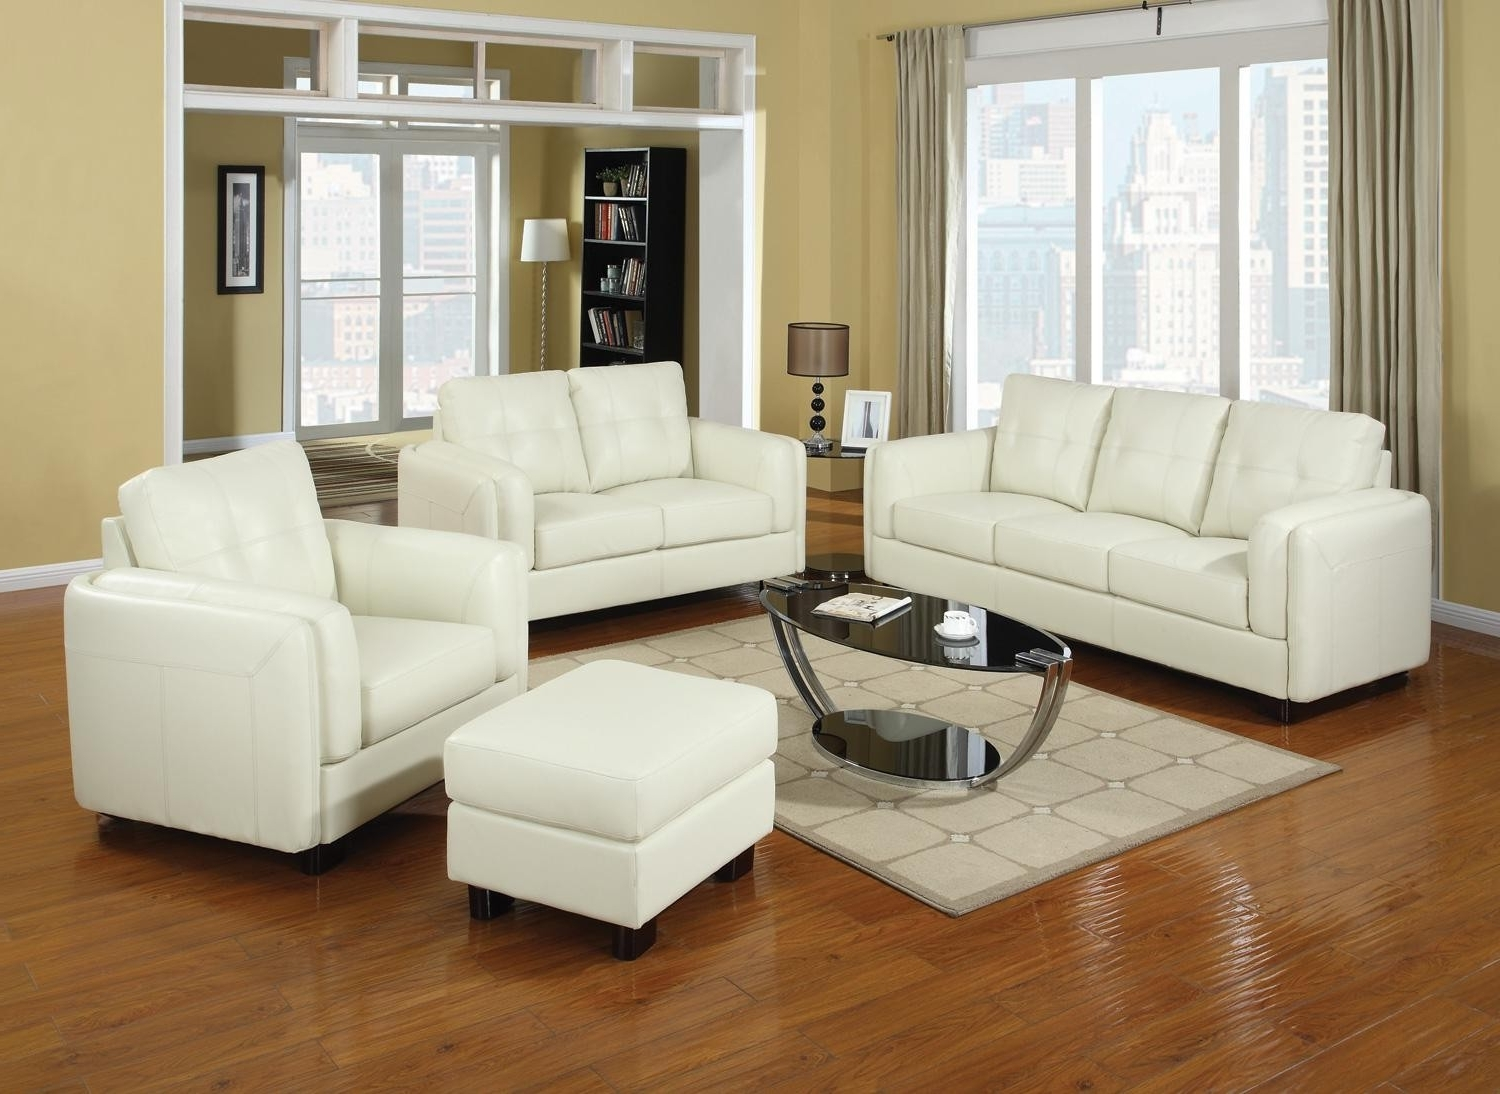 Cream Colored Sofas Intended For Trendy Couch: Attractive Cream Couches Cream Couch Decorating Ideas (View 6 of 20)